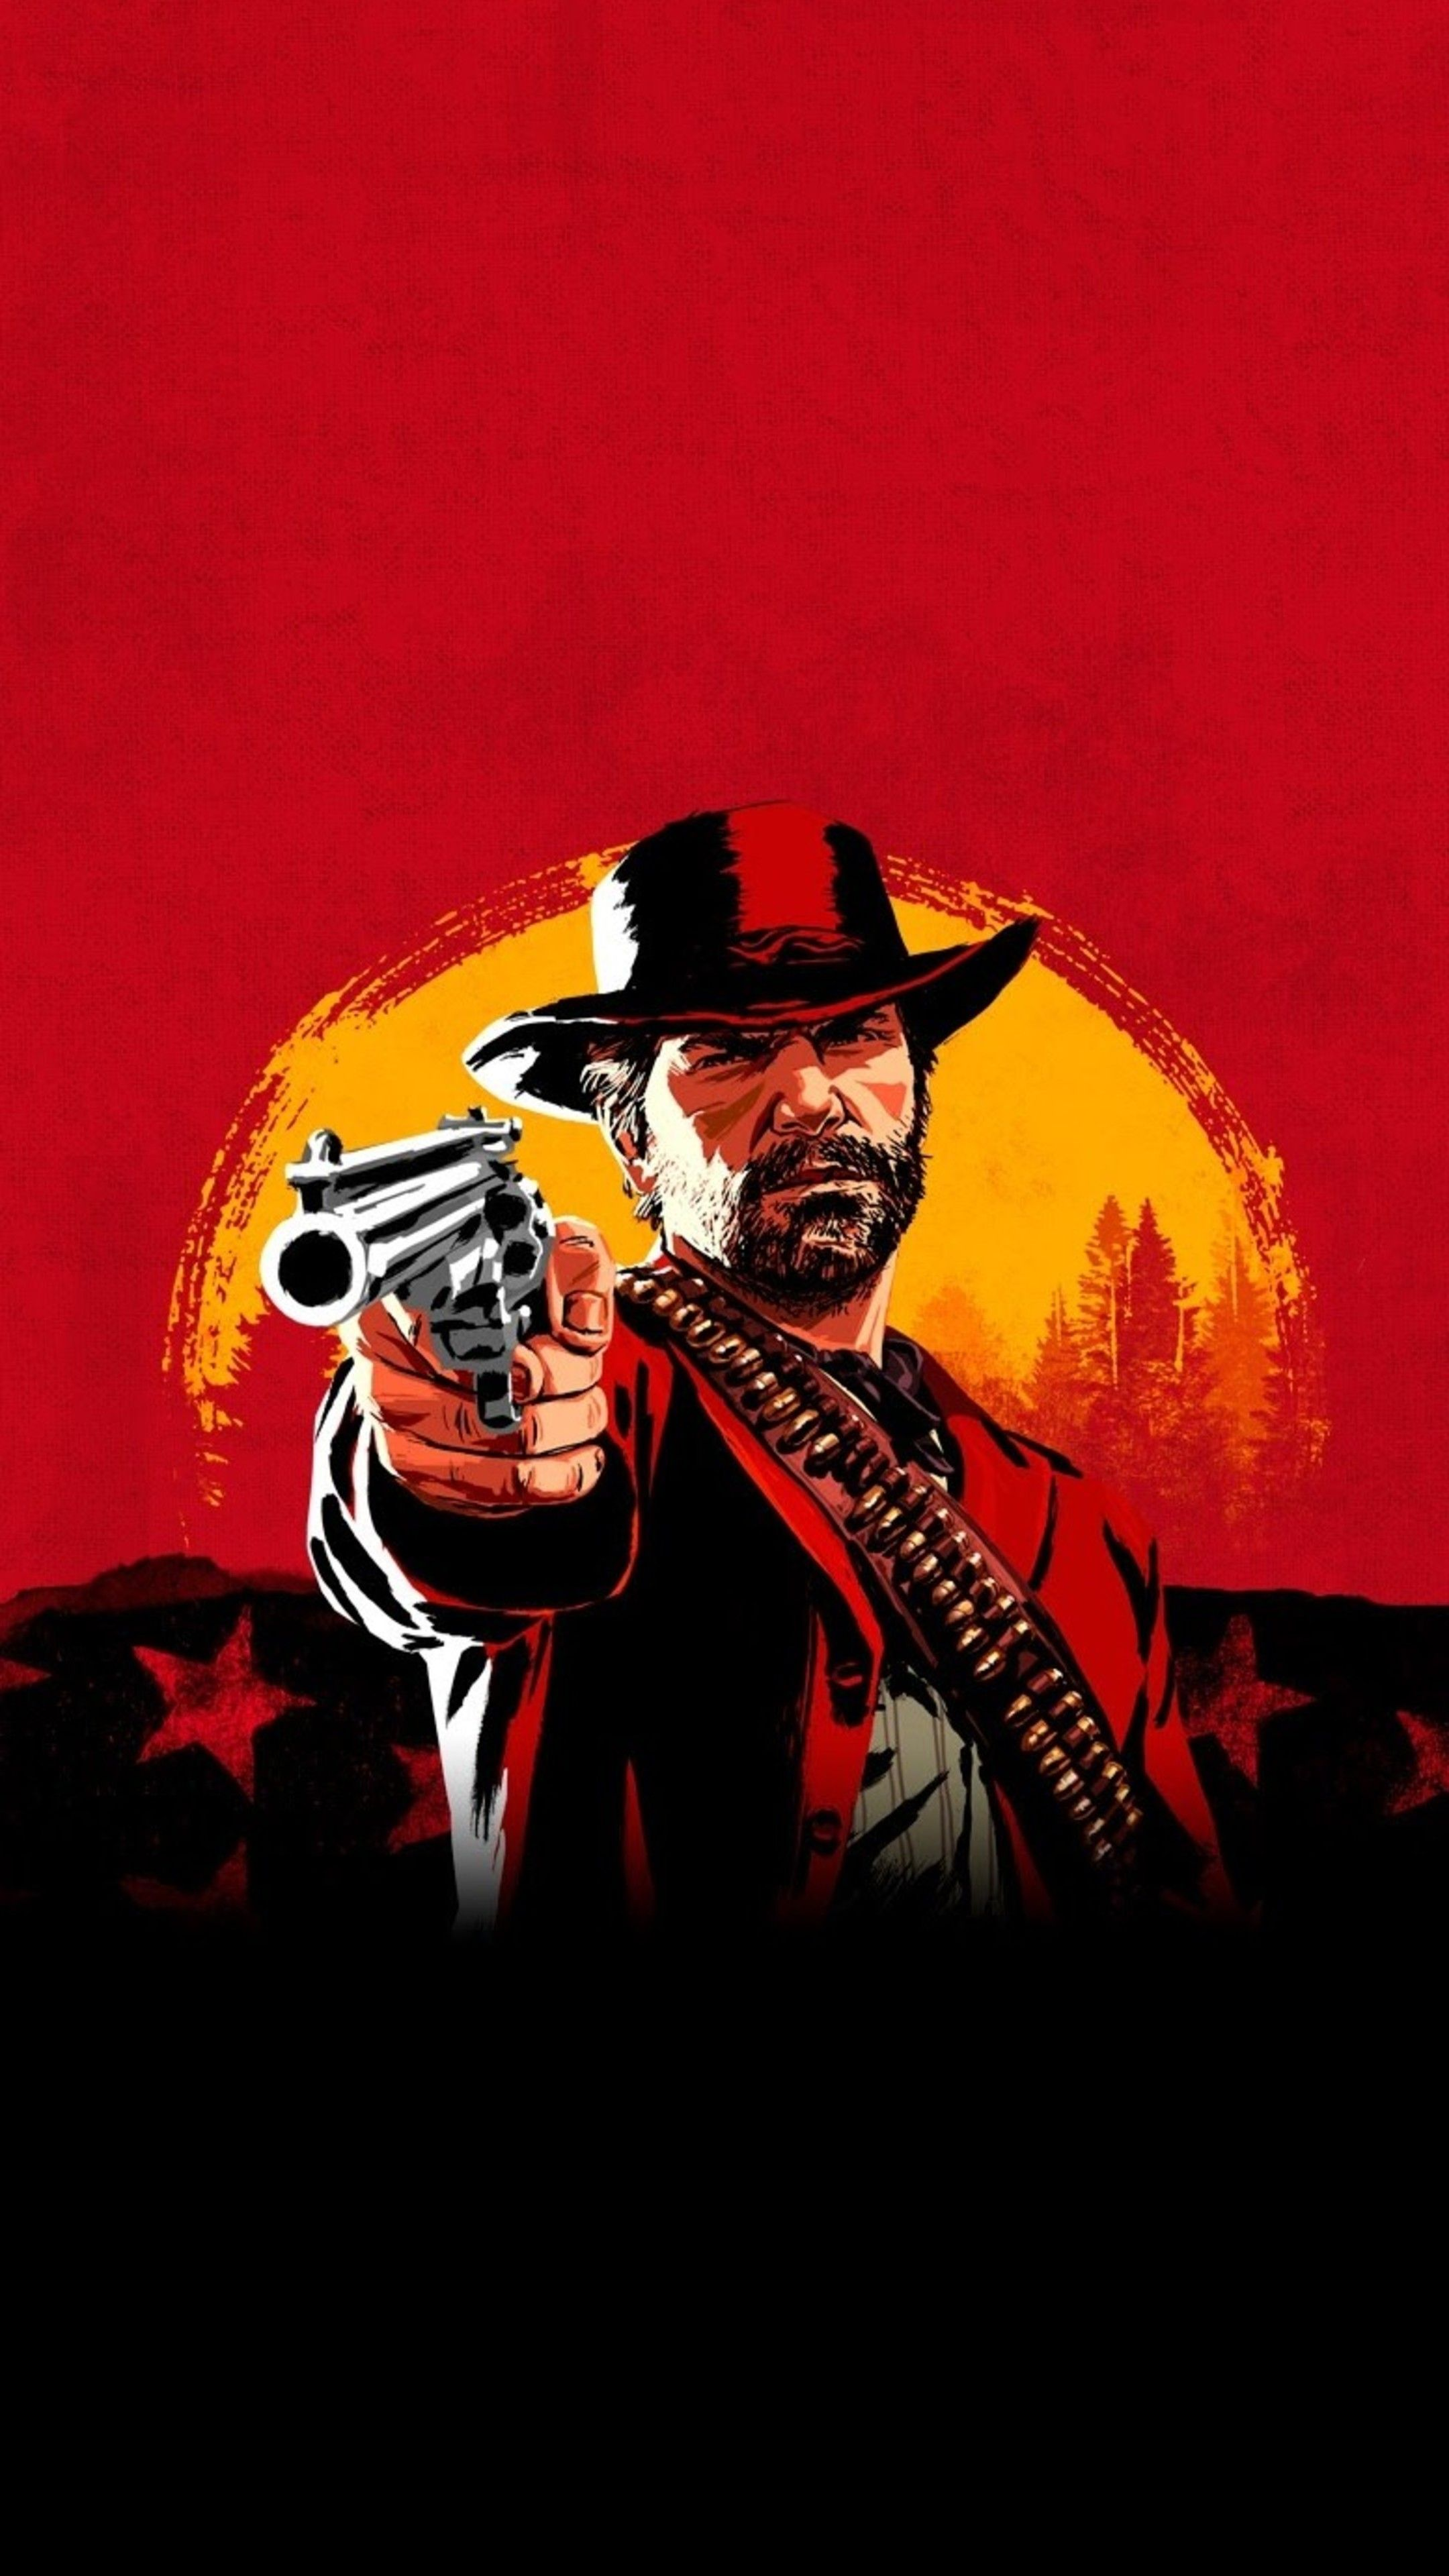 Free Download Misc Red Dead Redemption 2 Wallpapers Hd 4k